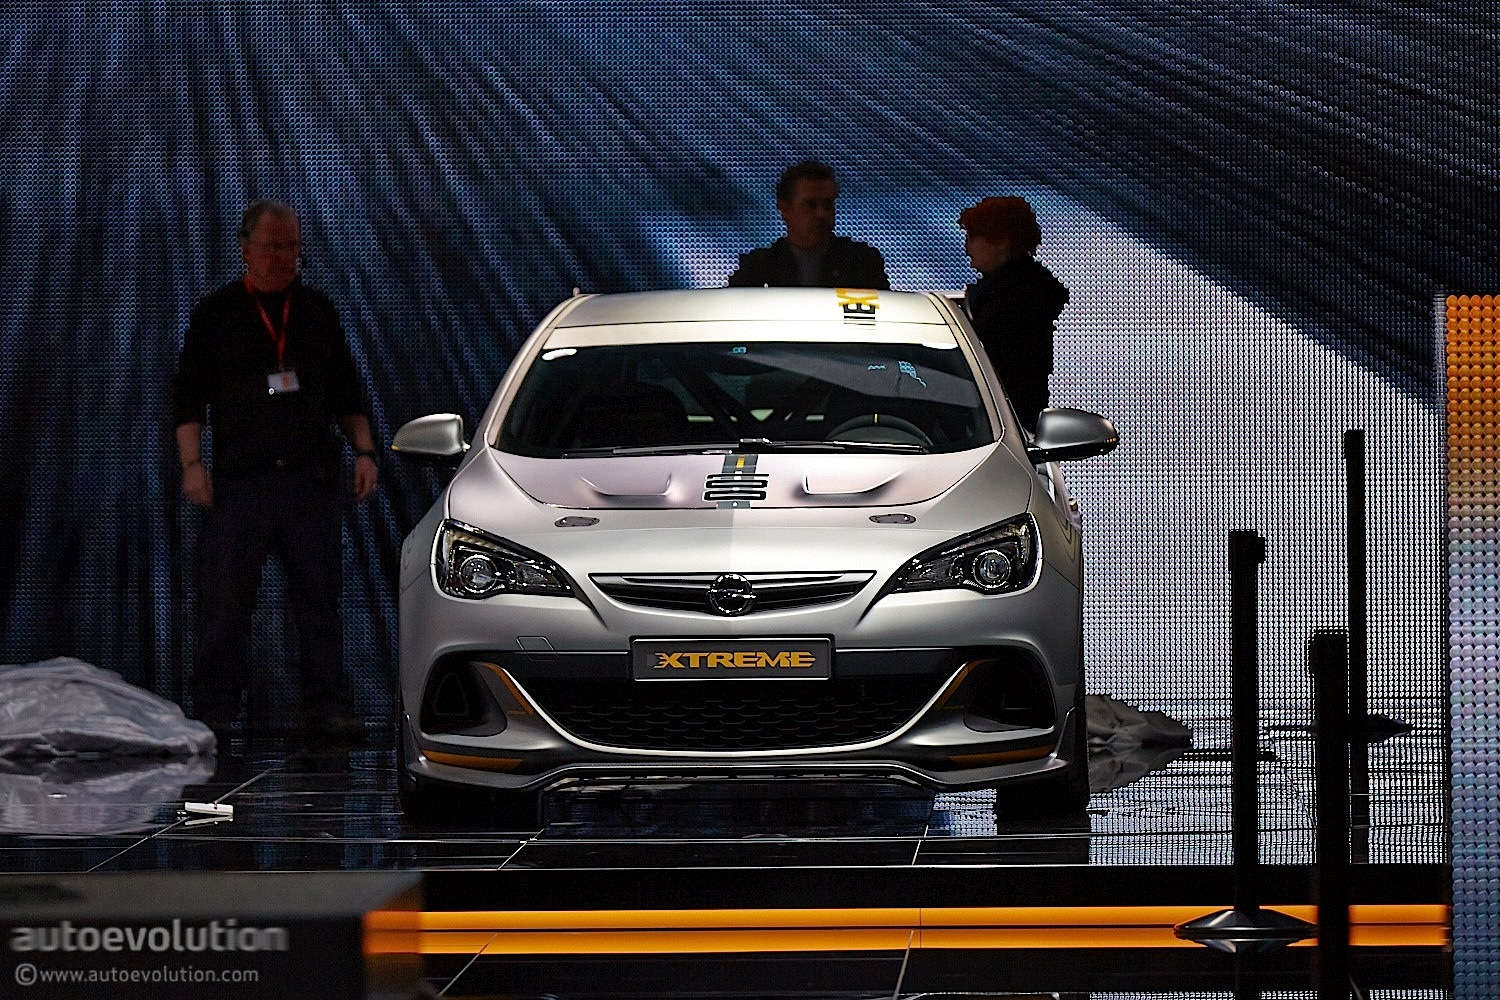 opel astra opc extreme brings its carbon fiber to geneva live photos autoevolution. Black Bedroom Furniture Sets. Home Design Ideas